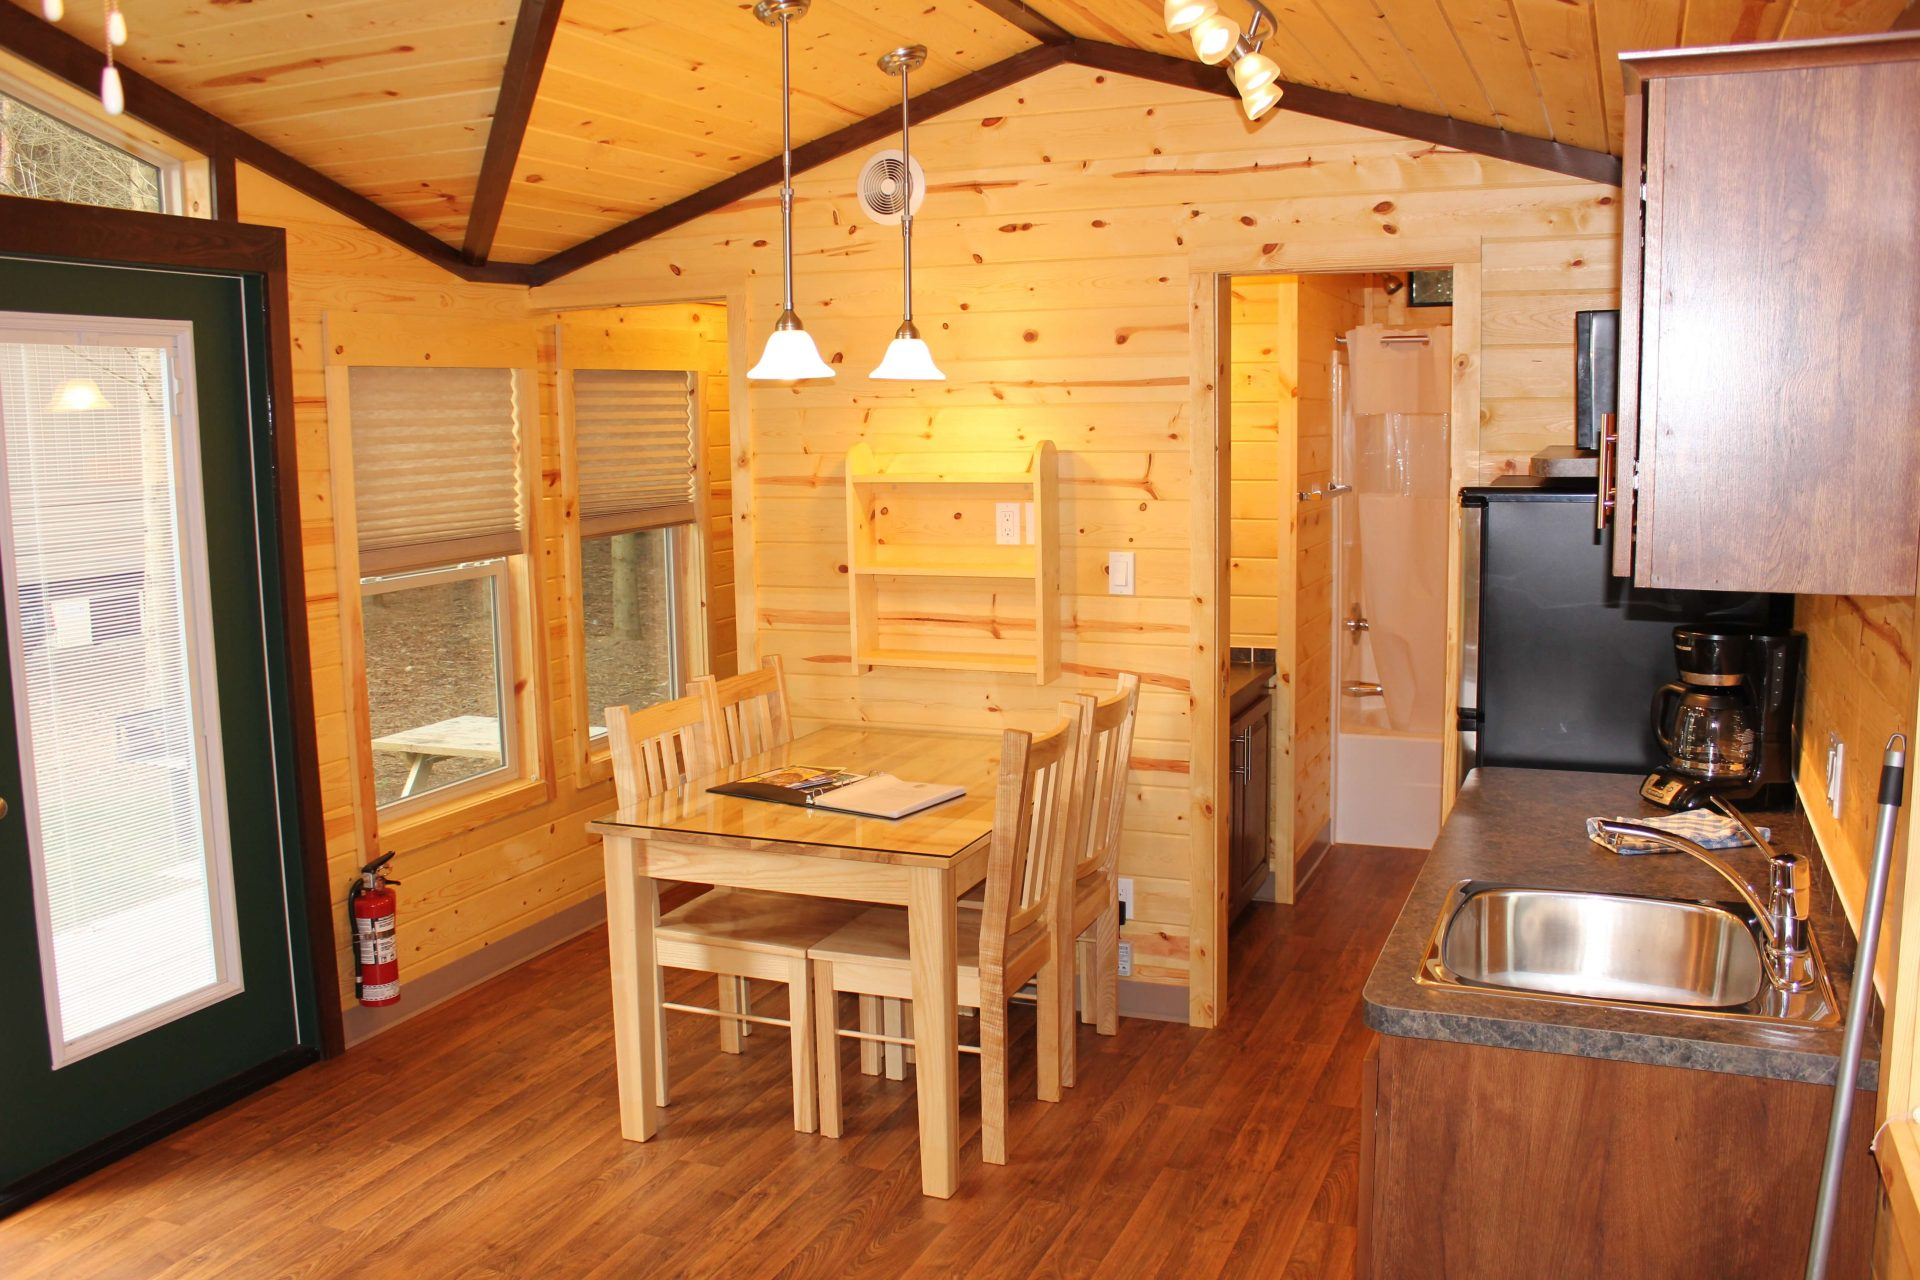 cabin interior with kitchen